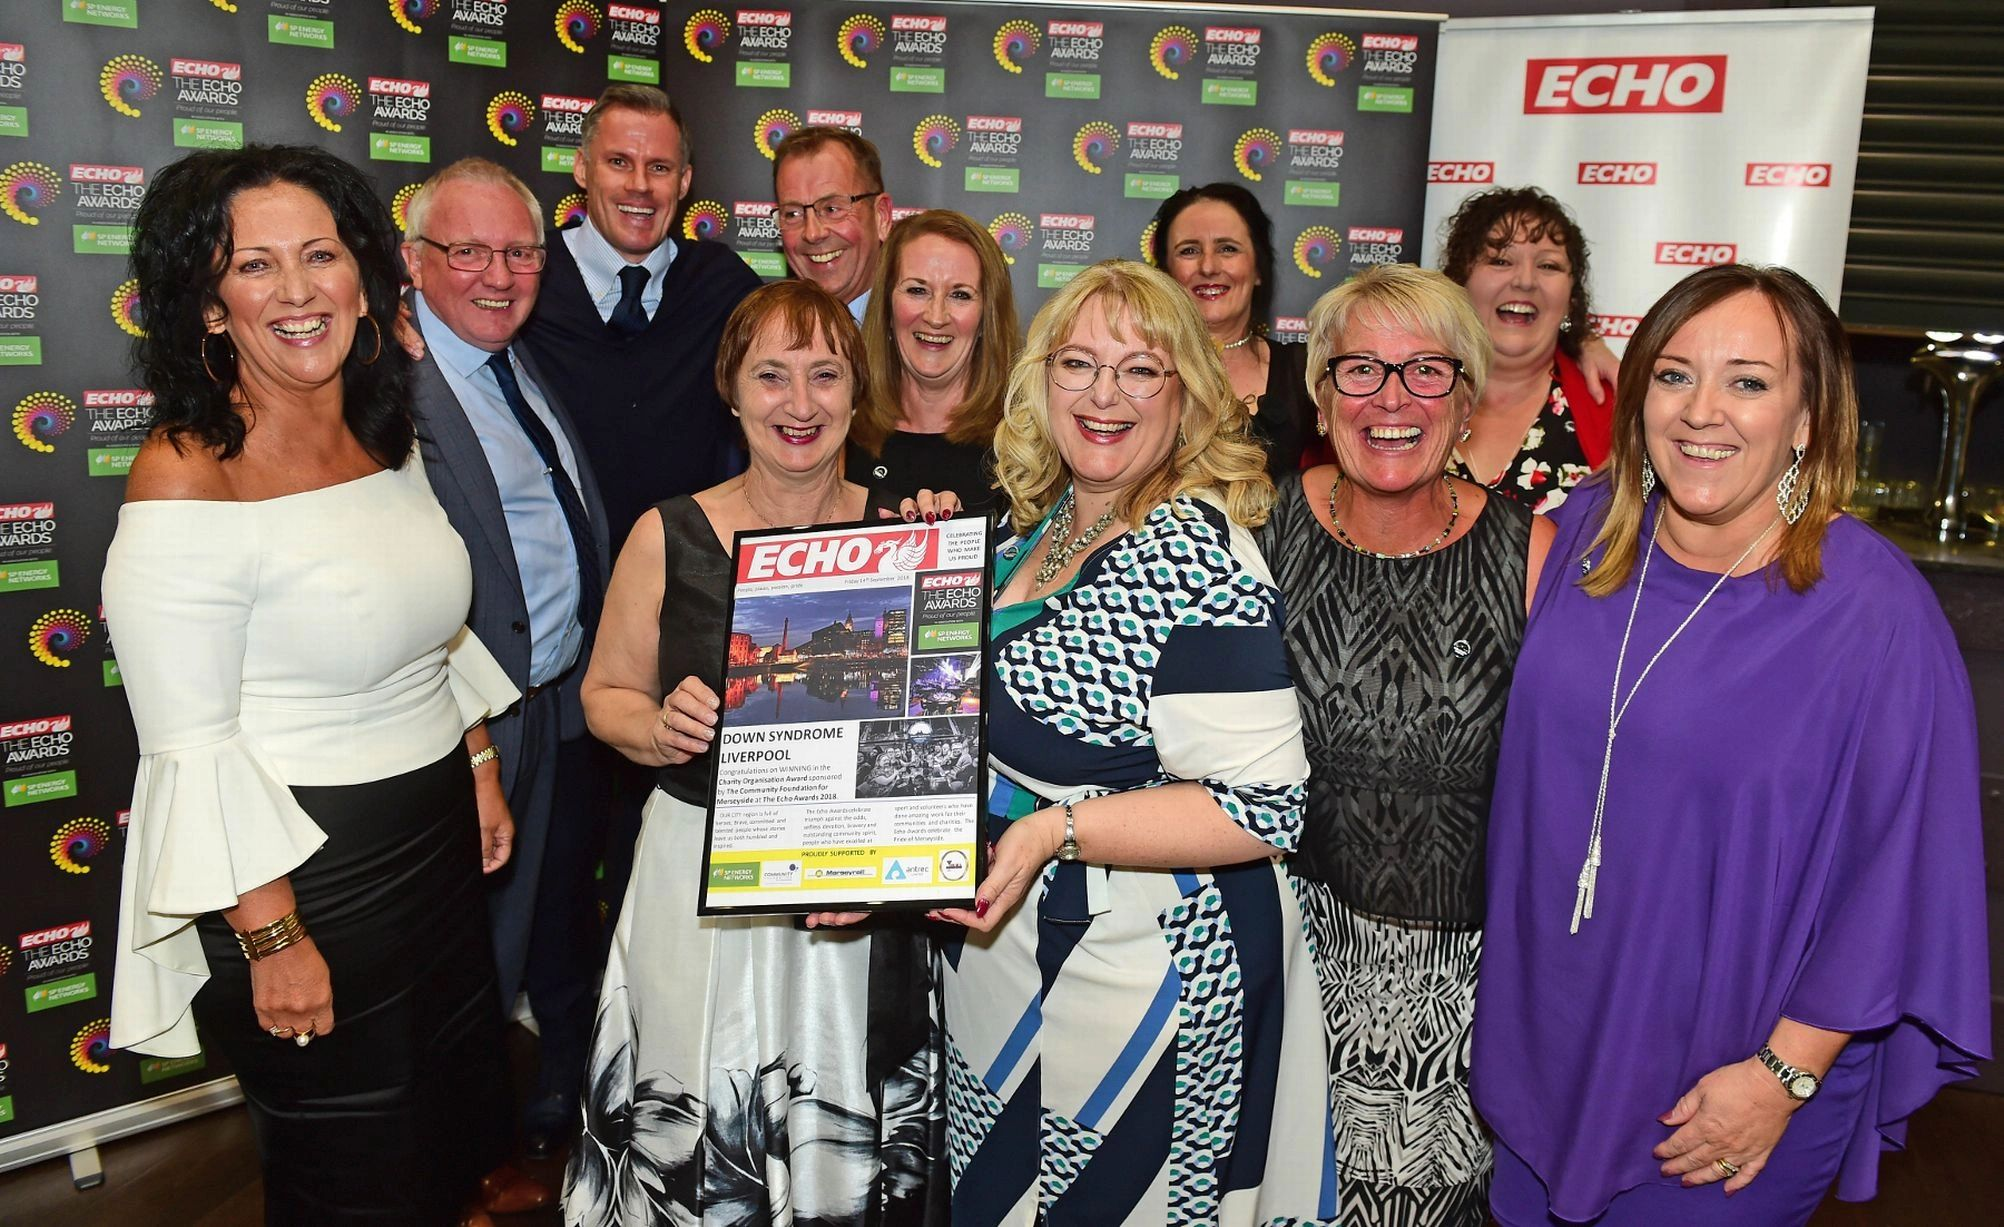 Downs Syndrome Liverpool trustees holding echo awards picture